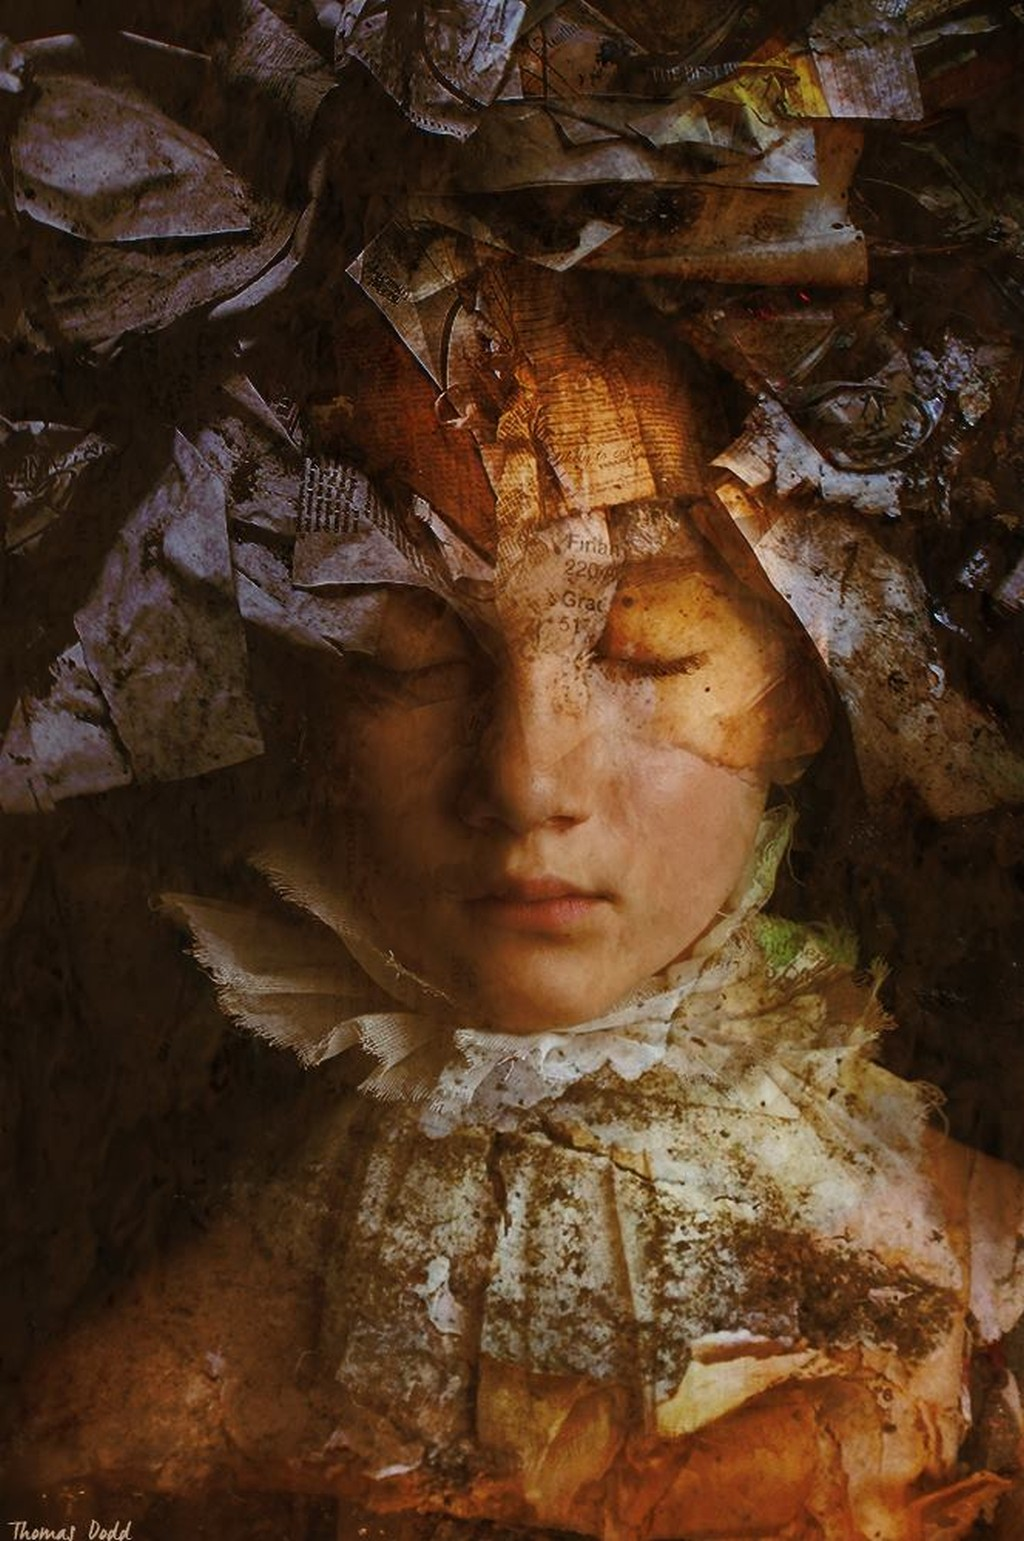 Thomas Dodd Painterly Photography Artophilia